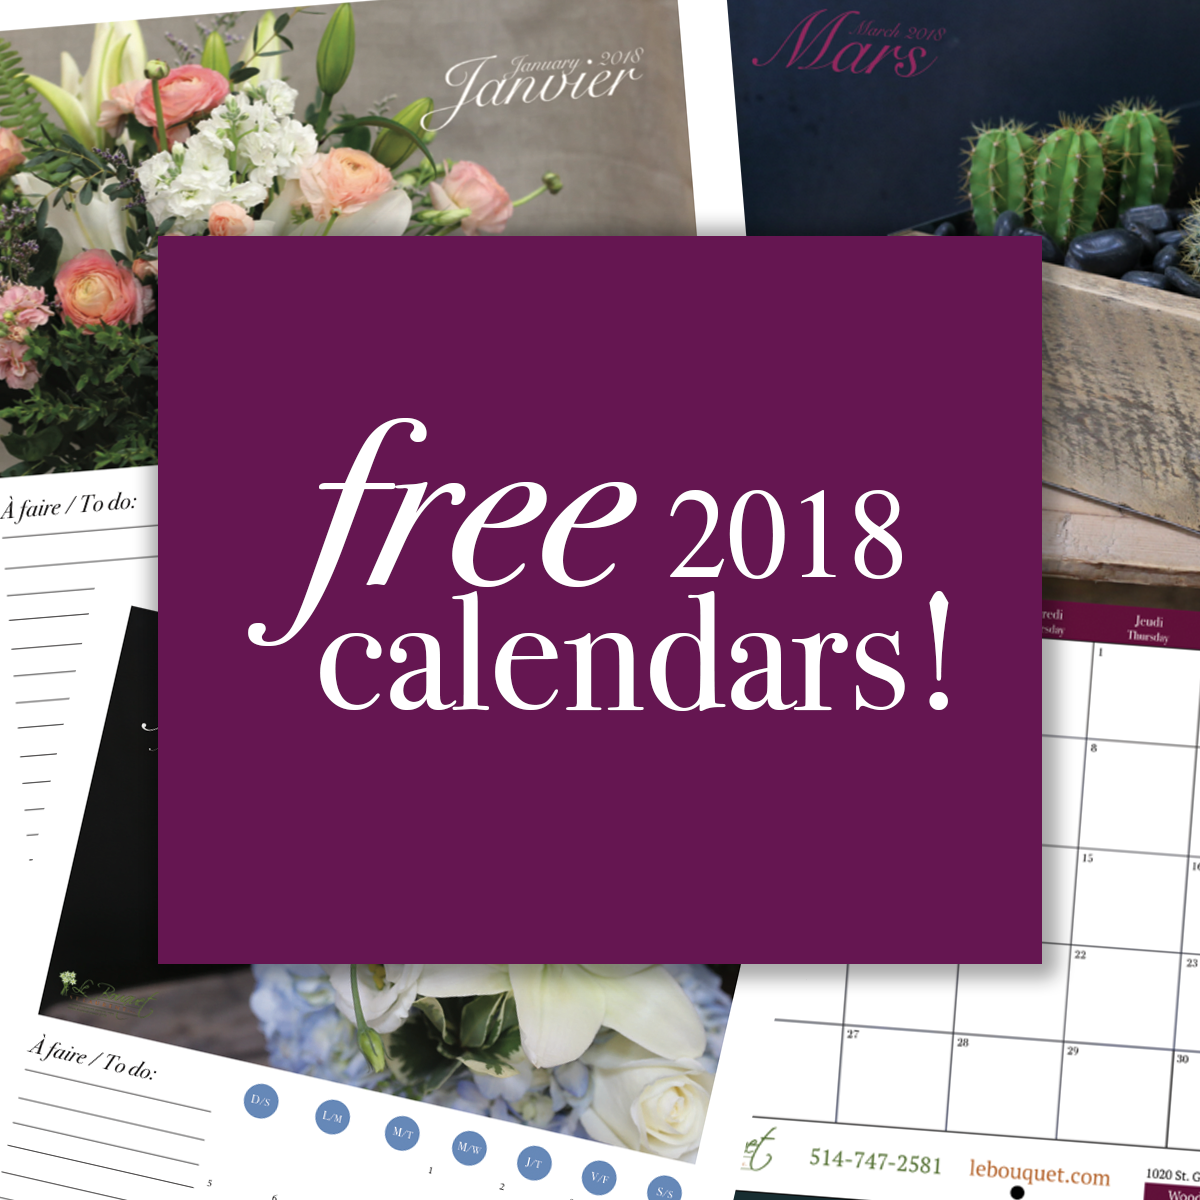 free downloadable calendars from Montreal based florist Le Bouquet St Laurent